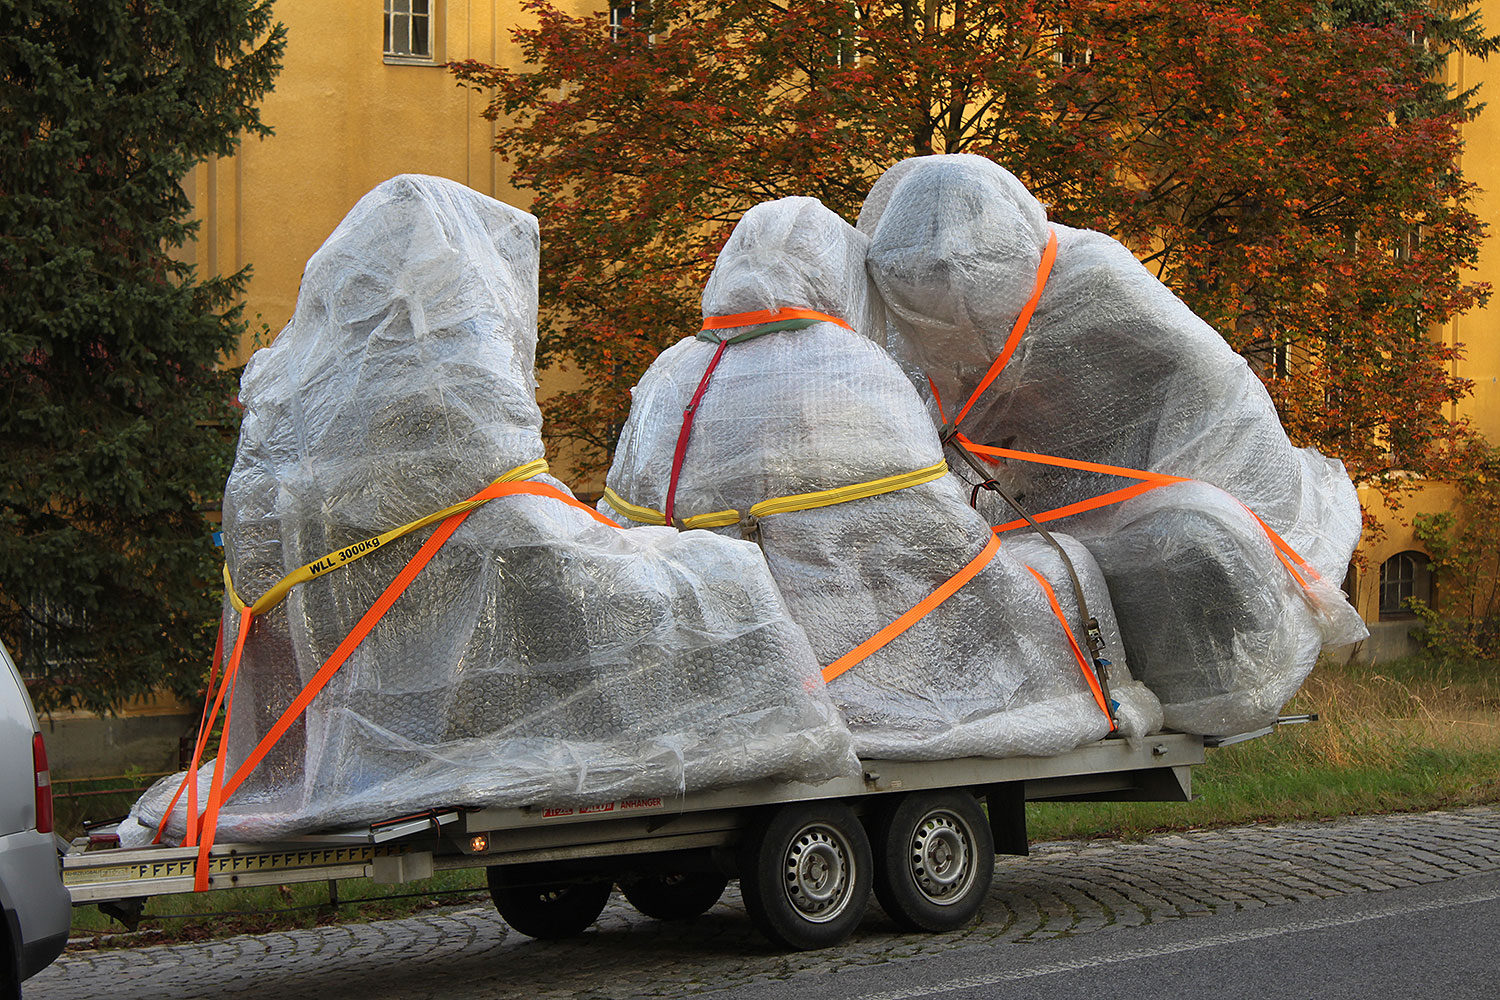 large scale sculpture monumental statue 3d format guardians of time on tour by Manfred Kili Kielnhofer plastic arts contemporary art design antique 2730oo